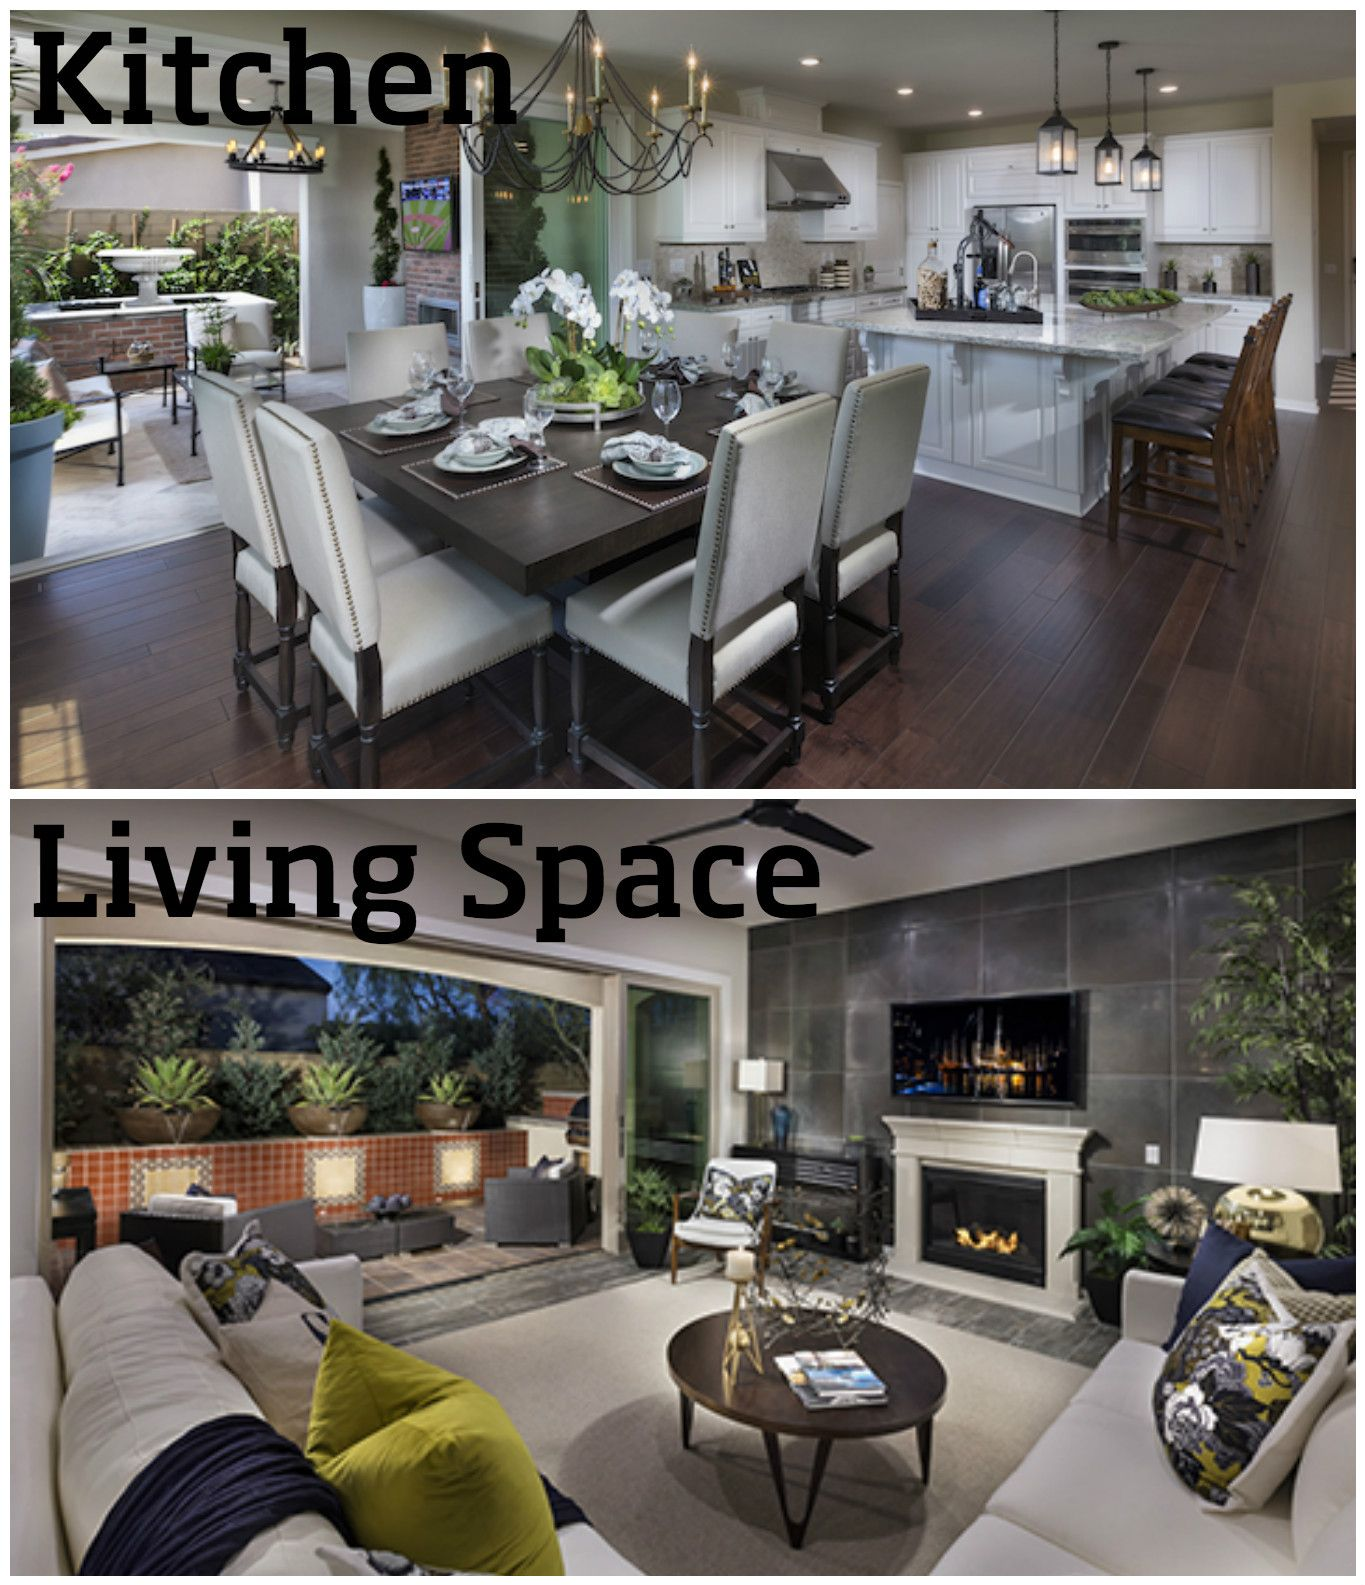 Would You LIKE The California Room To Connect To The Kitchen Or Living Space ?